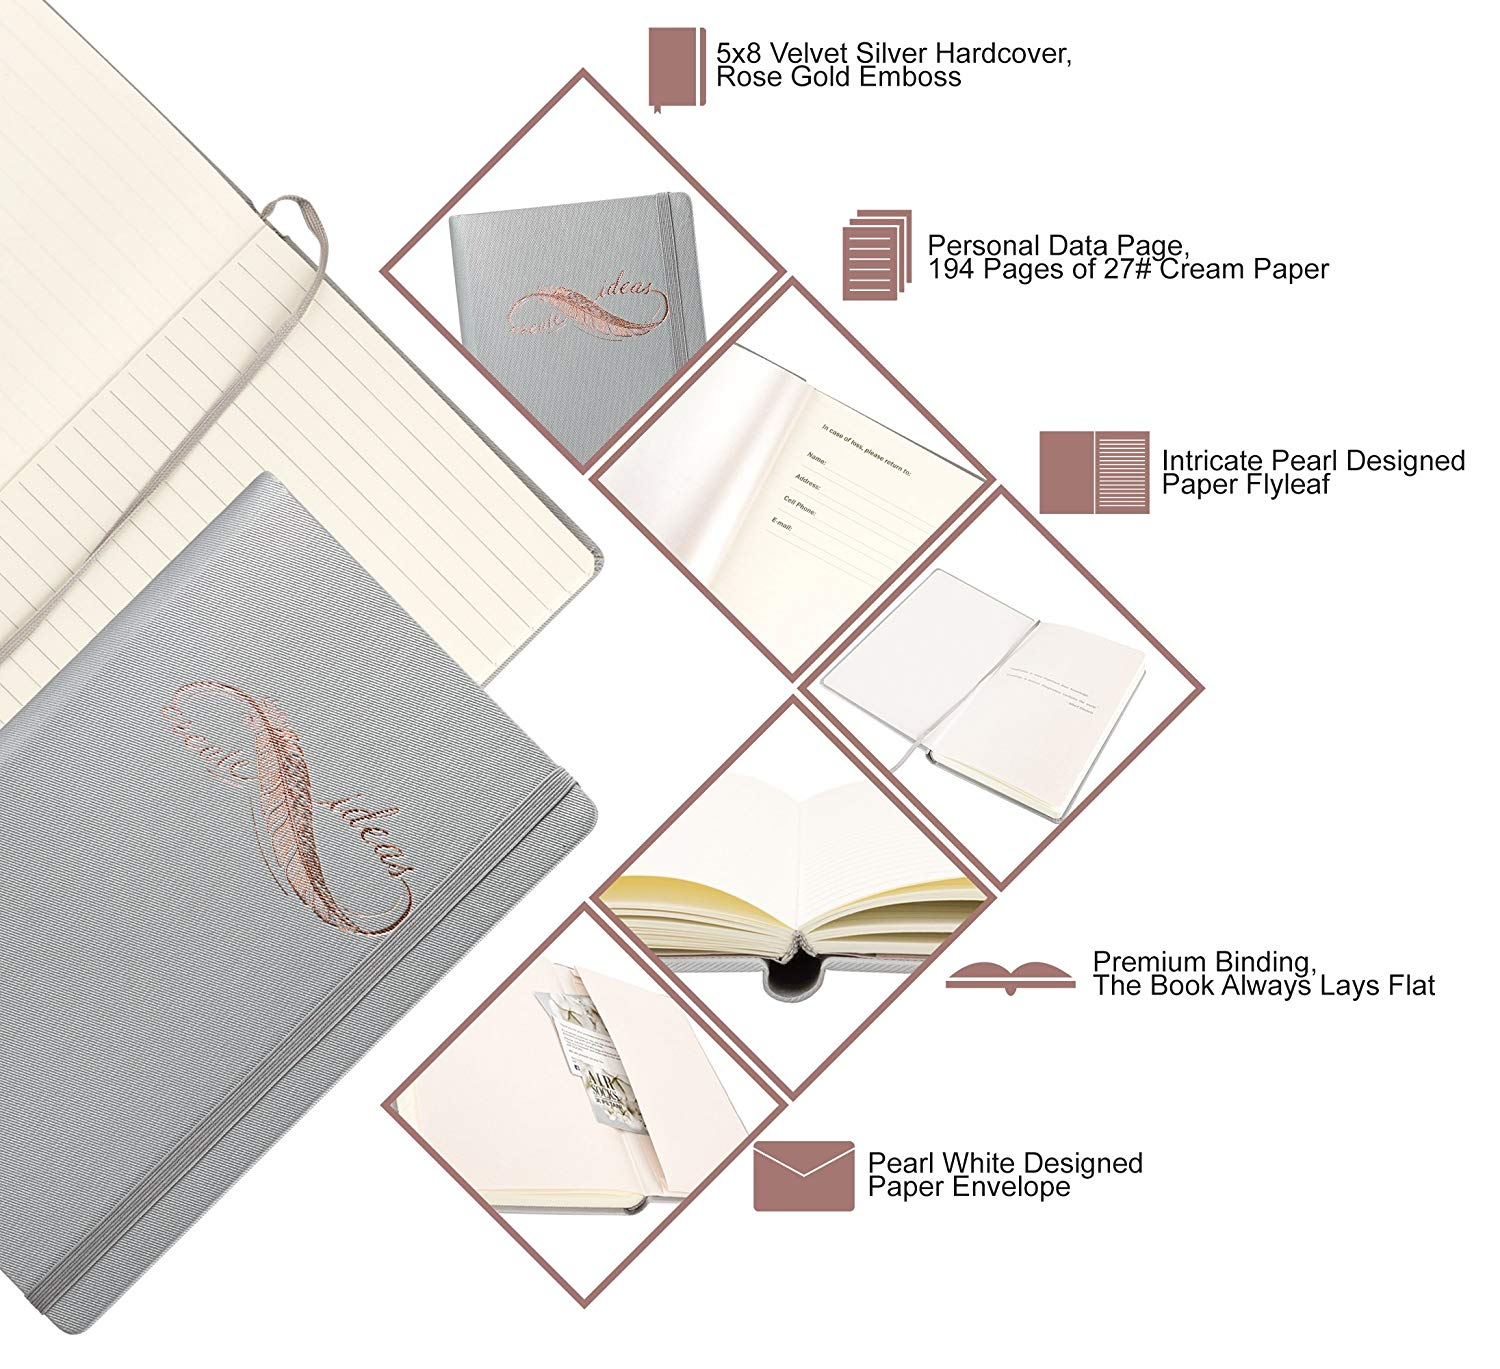 Hardcover Notebook for Business Women or Girls, A5 Journal, Lined Cream Paper, Rose Gold, Gift Box